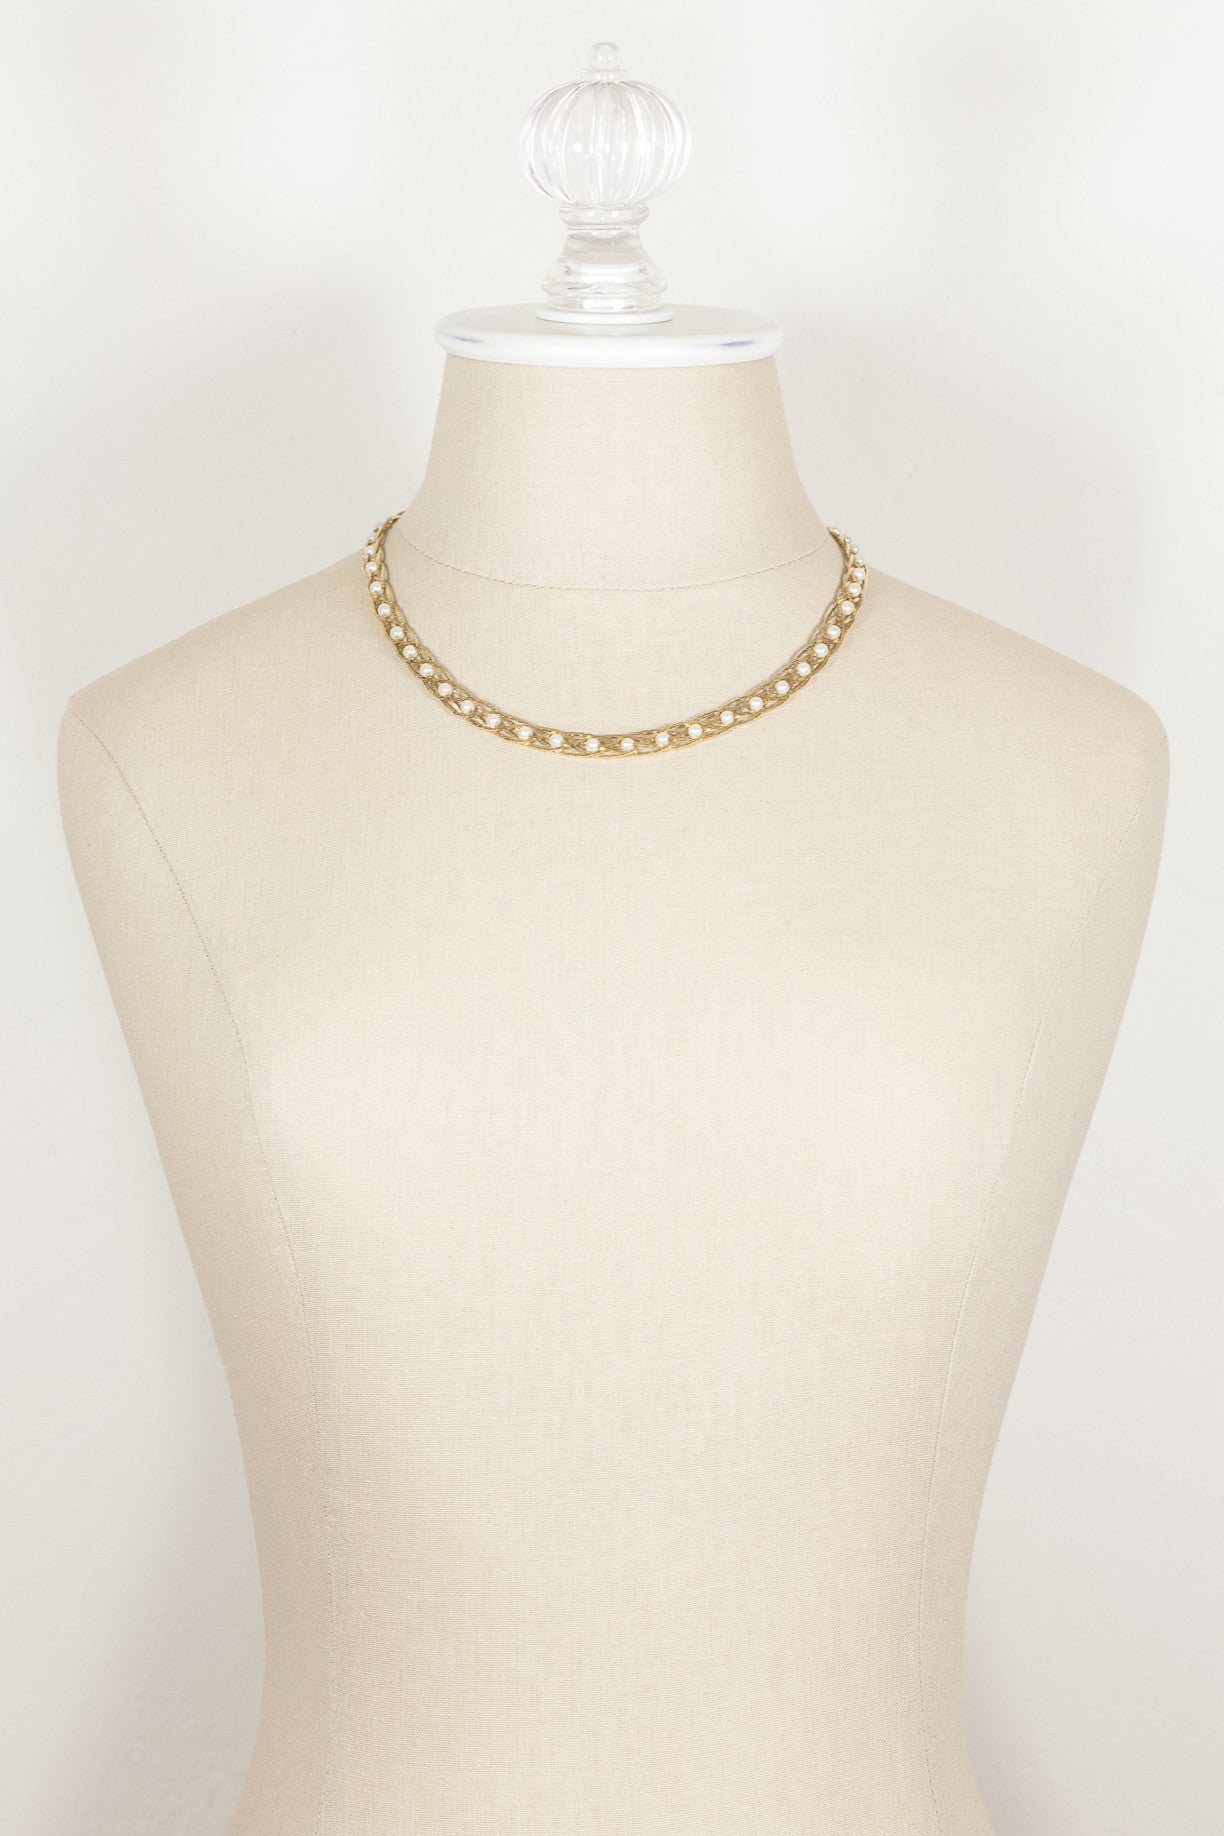 70's__Avon__Gold & Pearl Braided Necklace